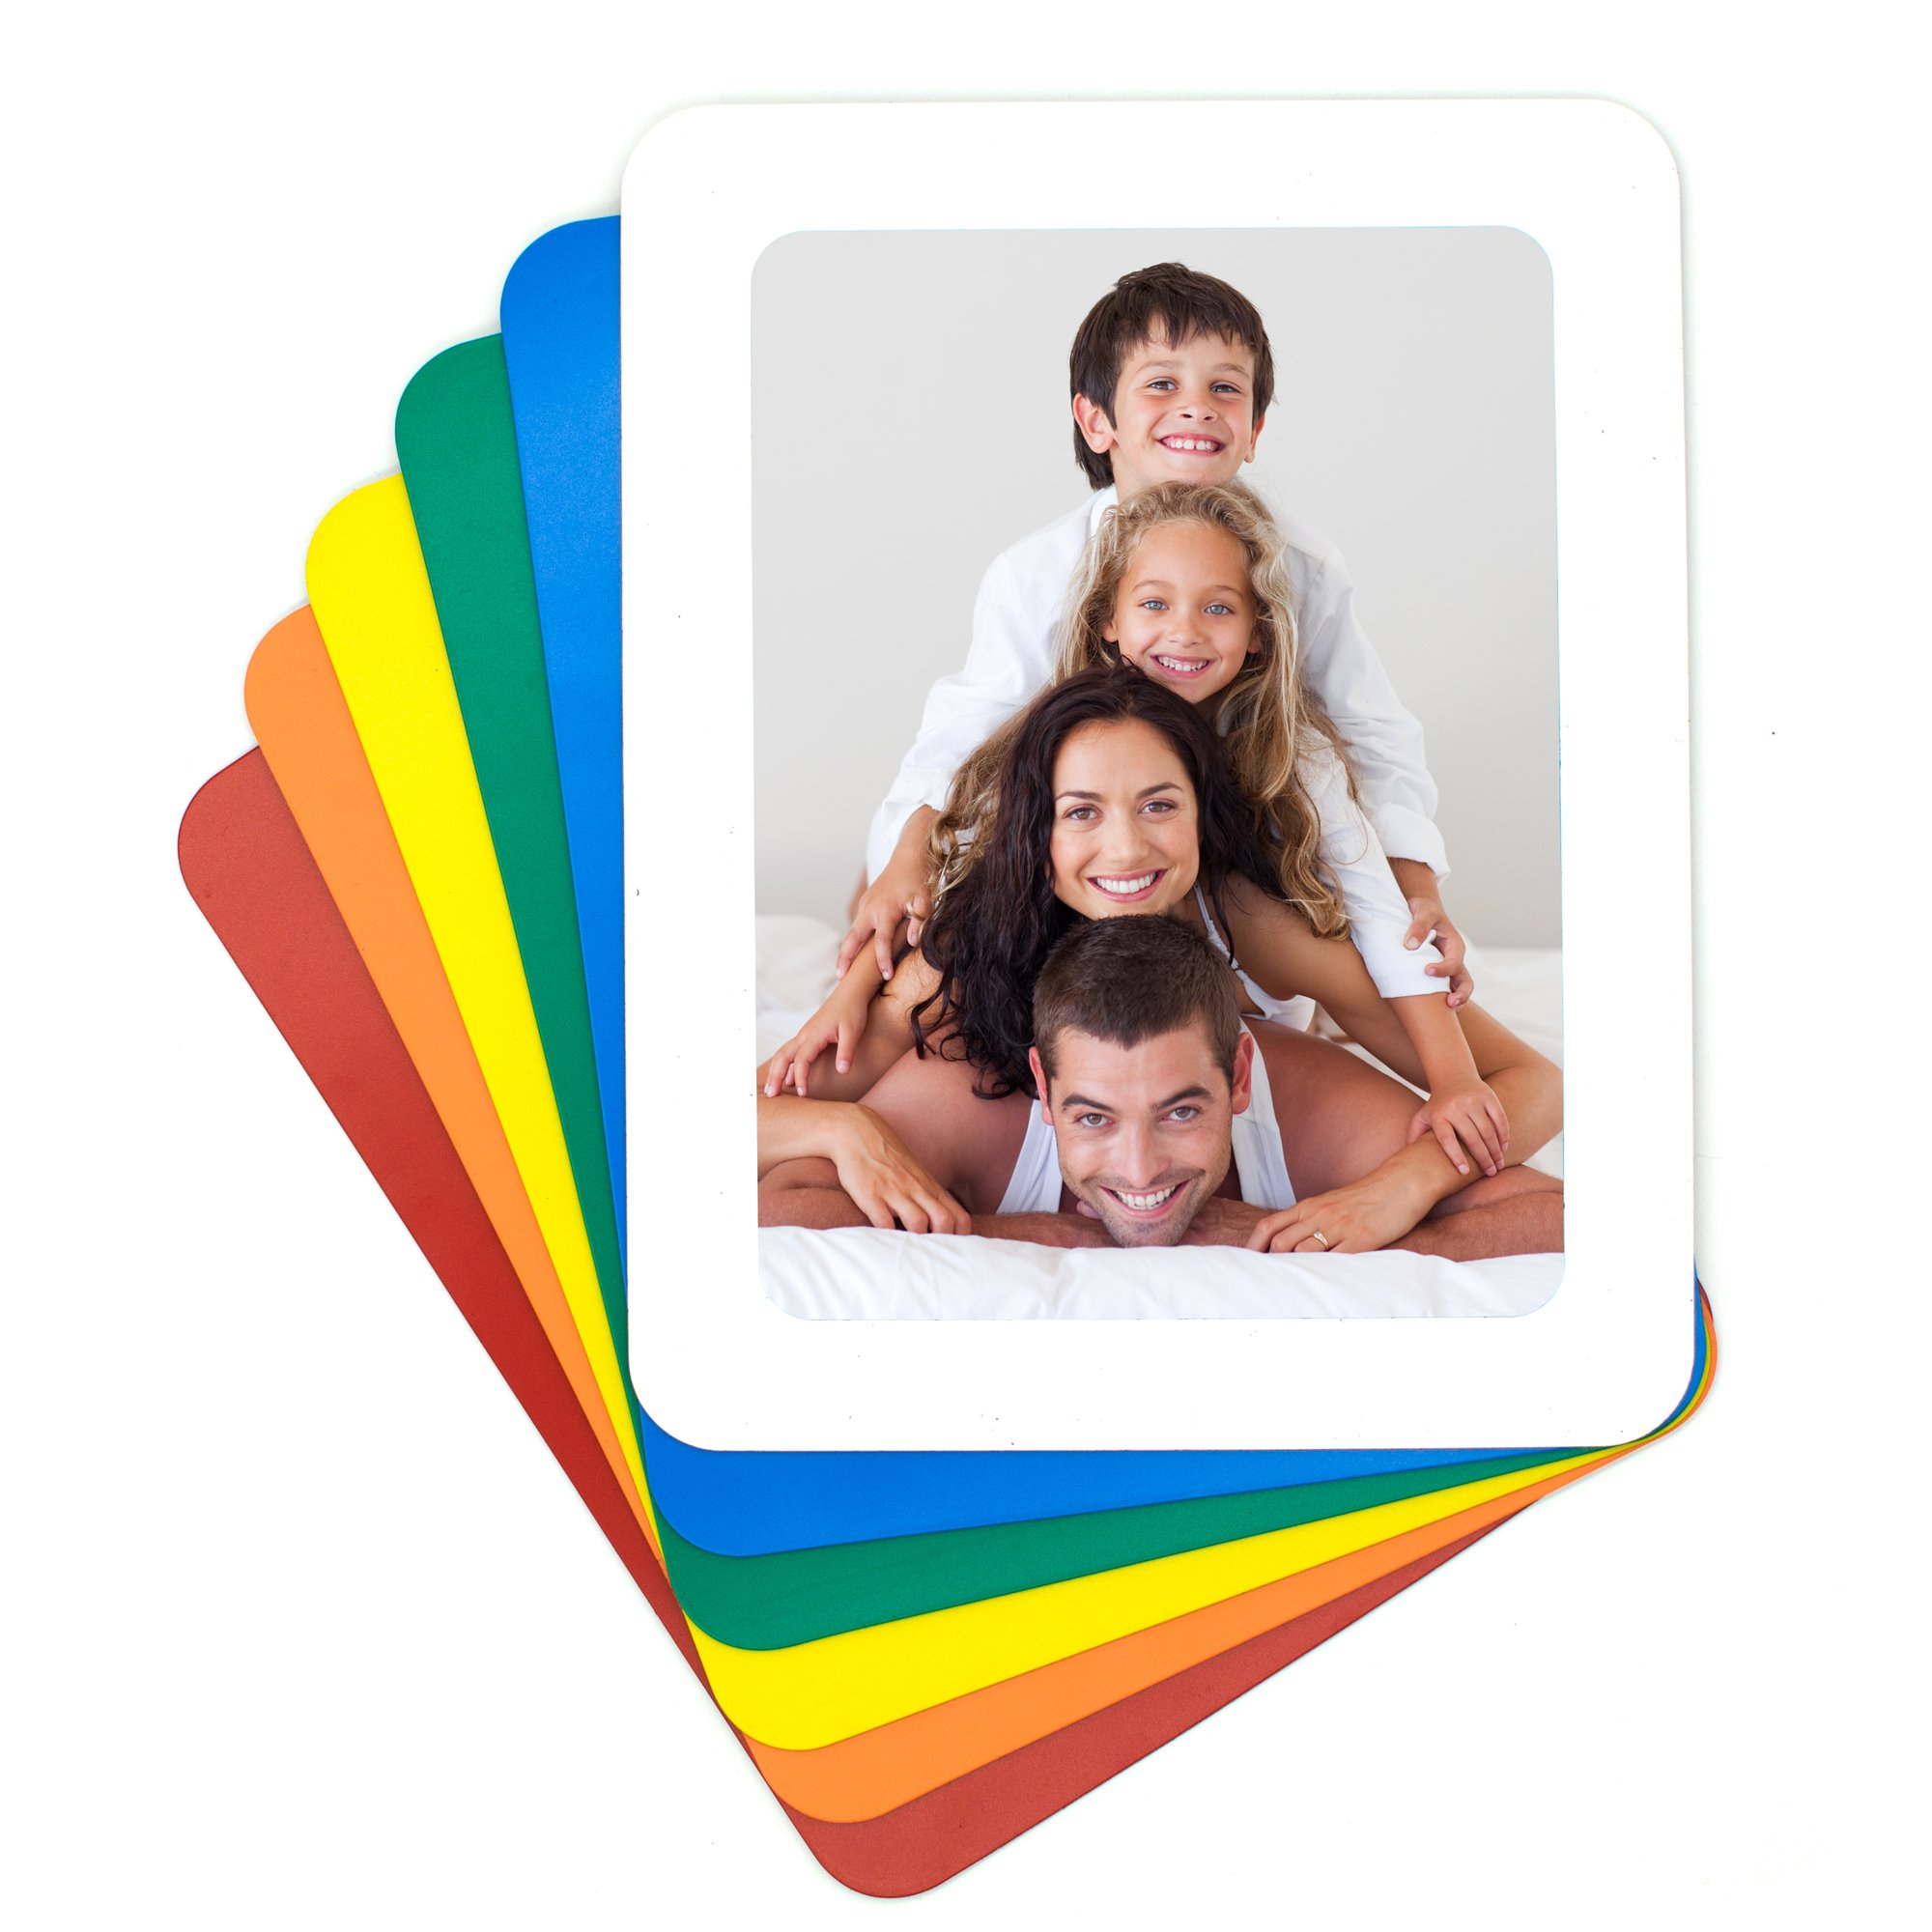 TOPINSTOCK 6 Pack Magnetic Picture Frames for Refrigerator 6 Colors Holds 5x7 Pictures Photo Frames by TOPINSTOCK